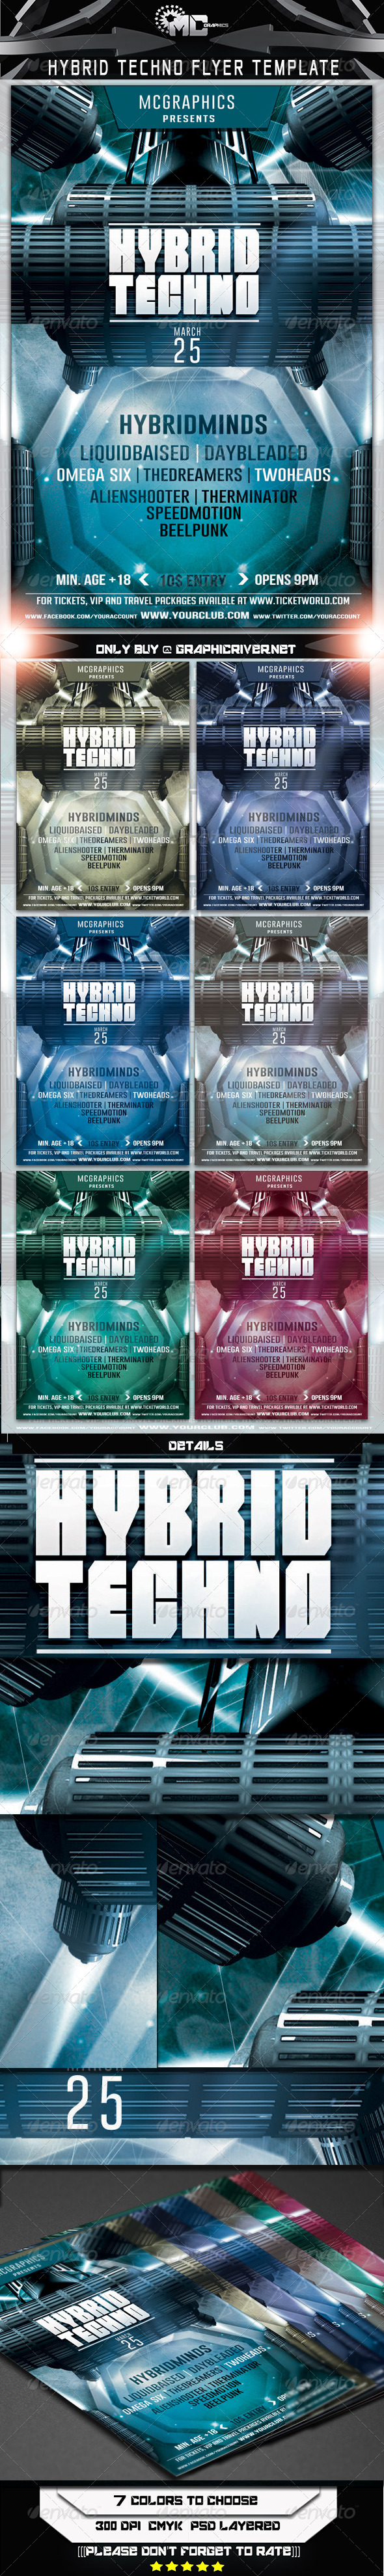 Hybrid Techno Flyer Template - Flyers Print Templates